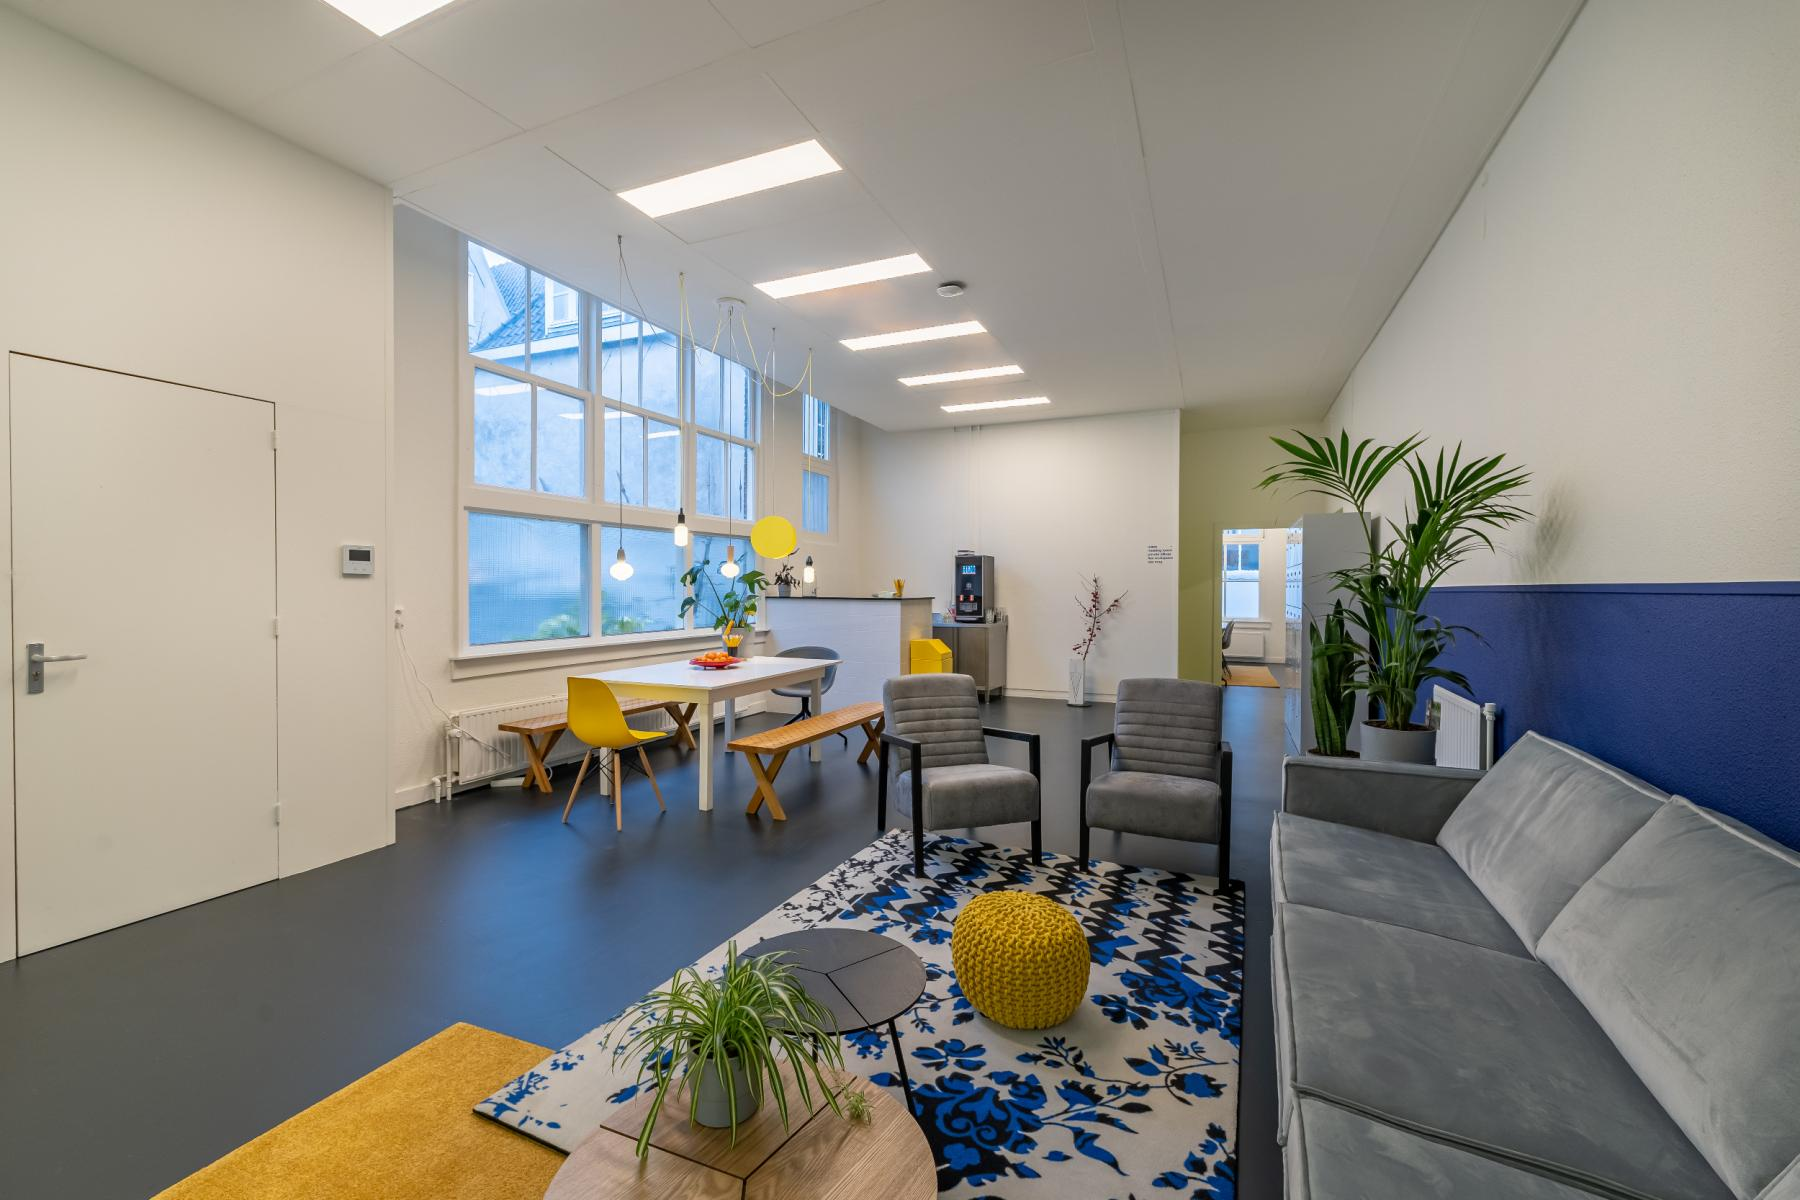 Rent office space Staalstraat 7a, Amsterdam (7)